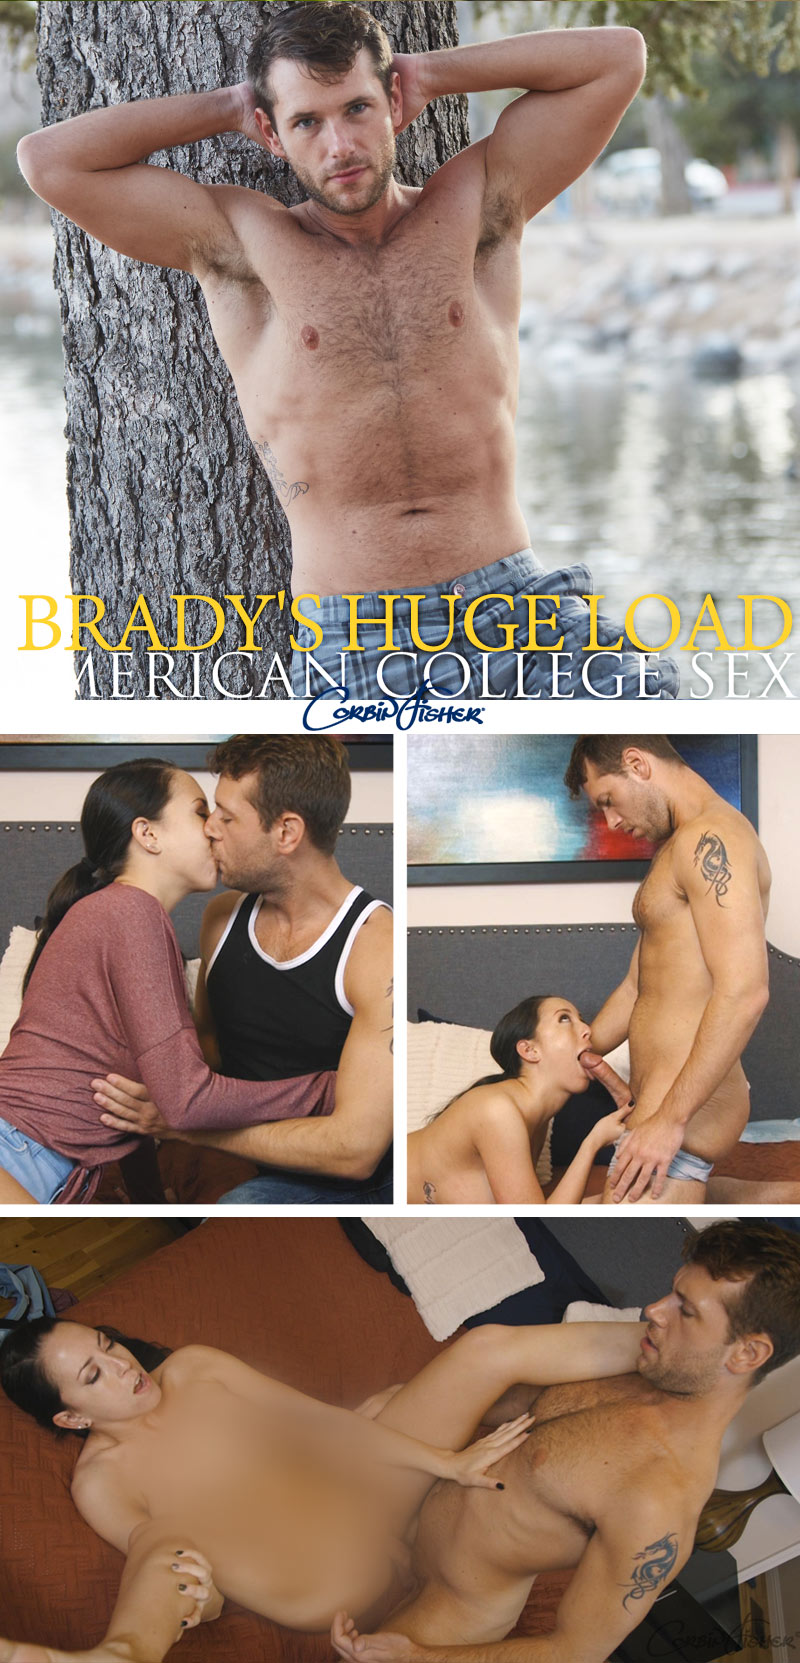 Brady's Huge Load at AmateurCollegeSex